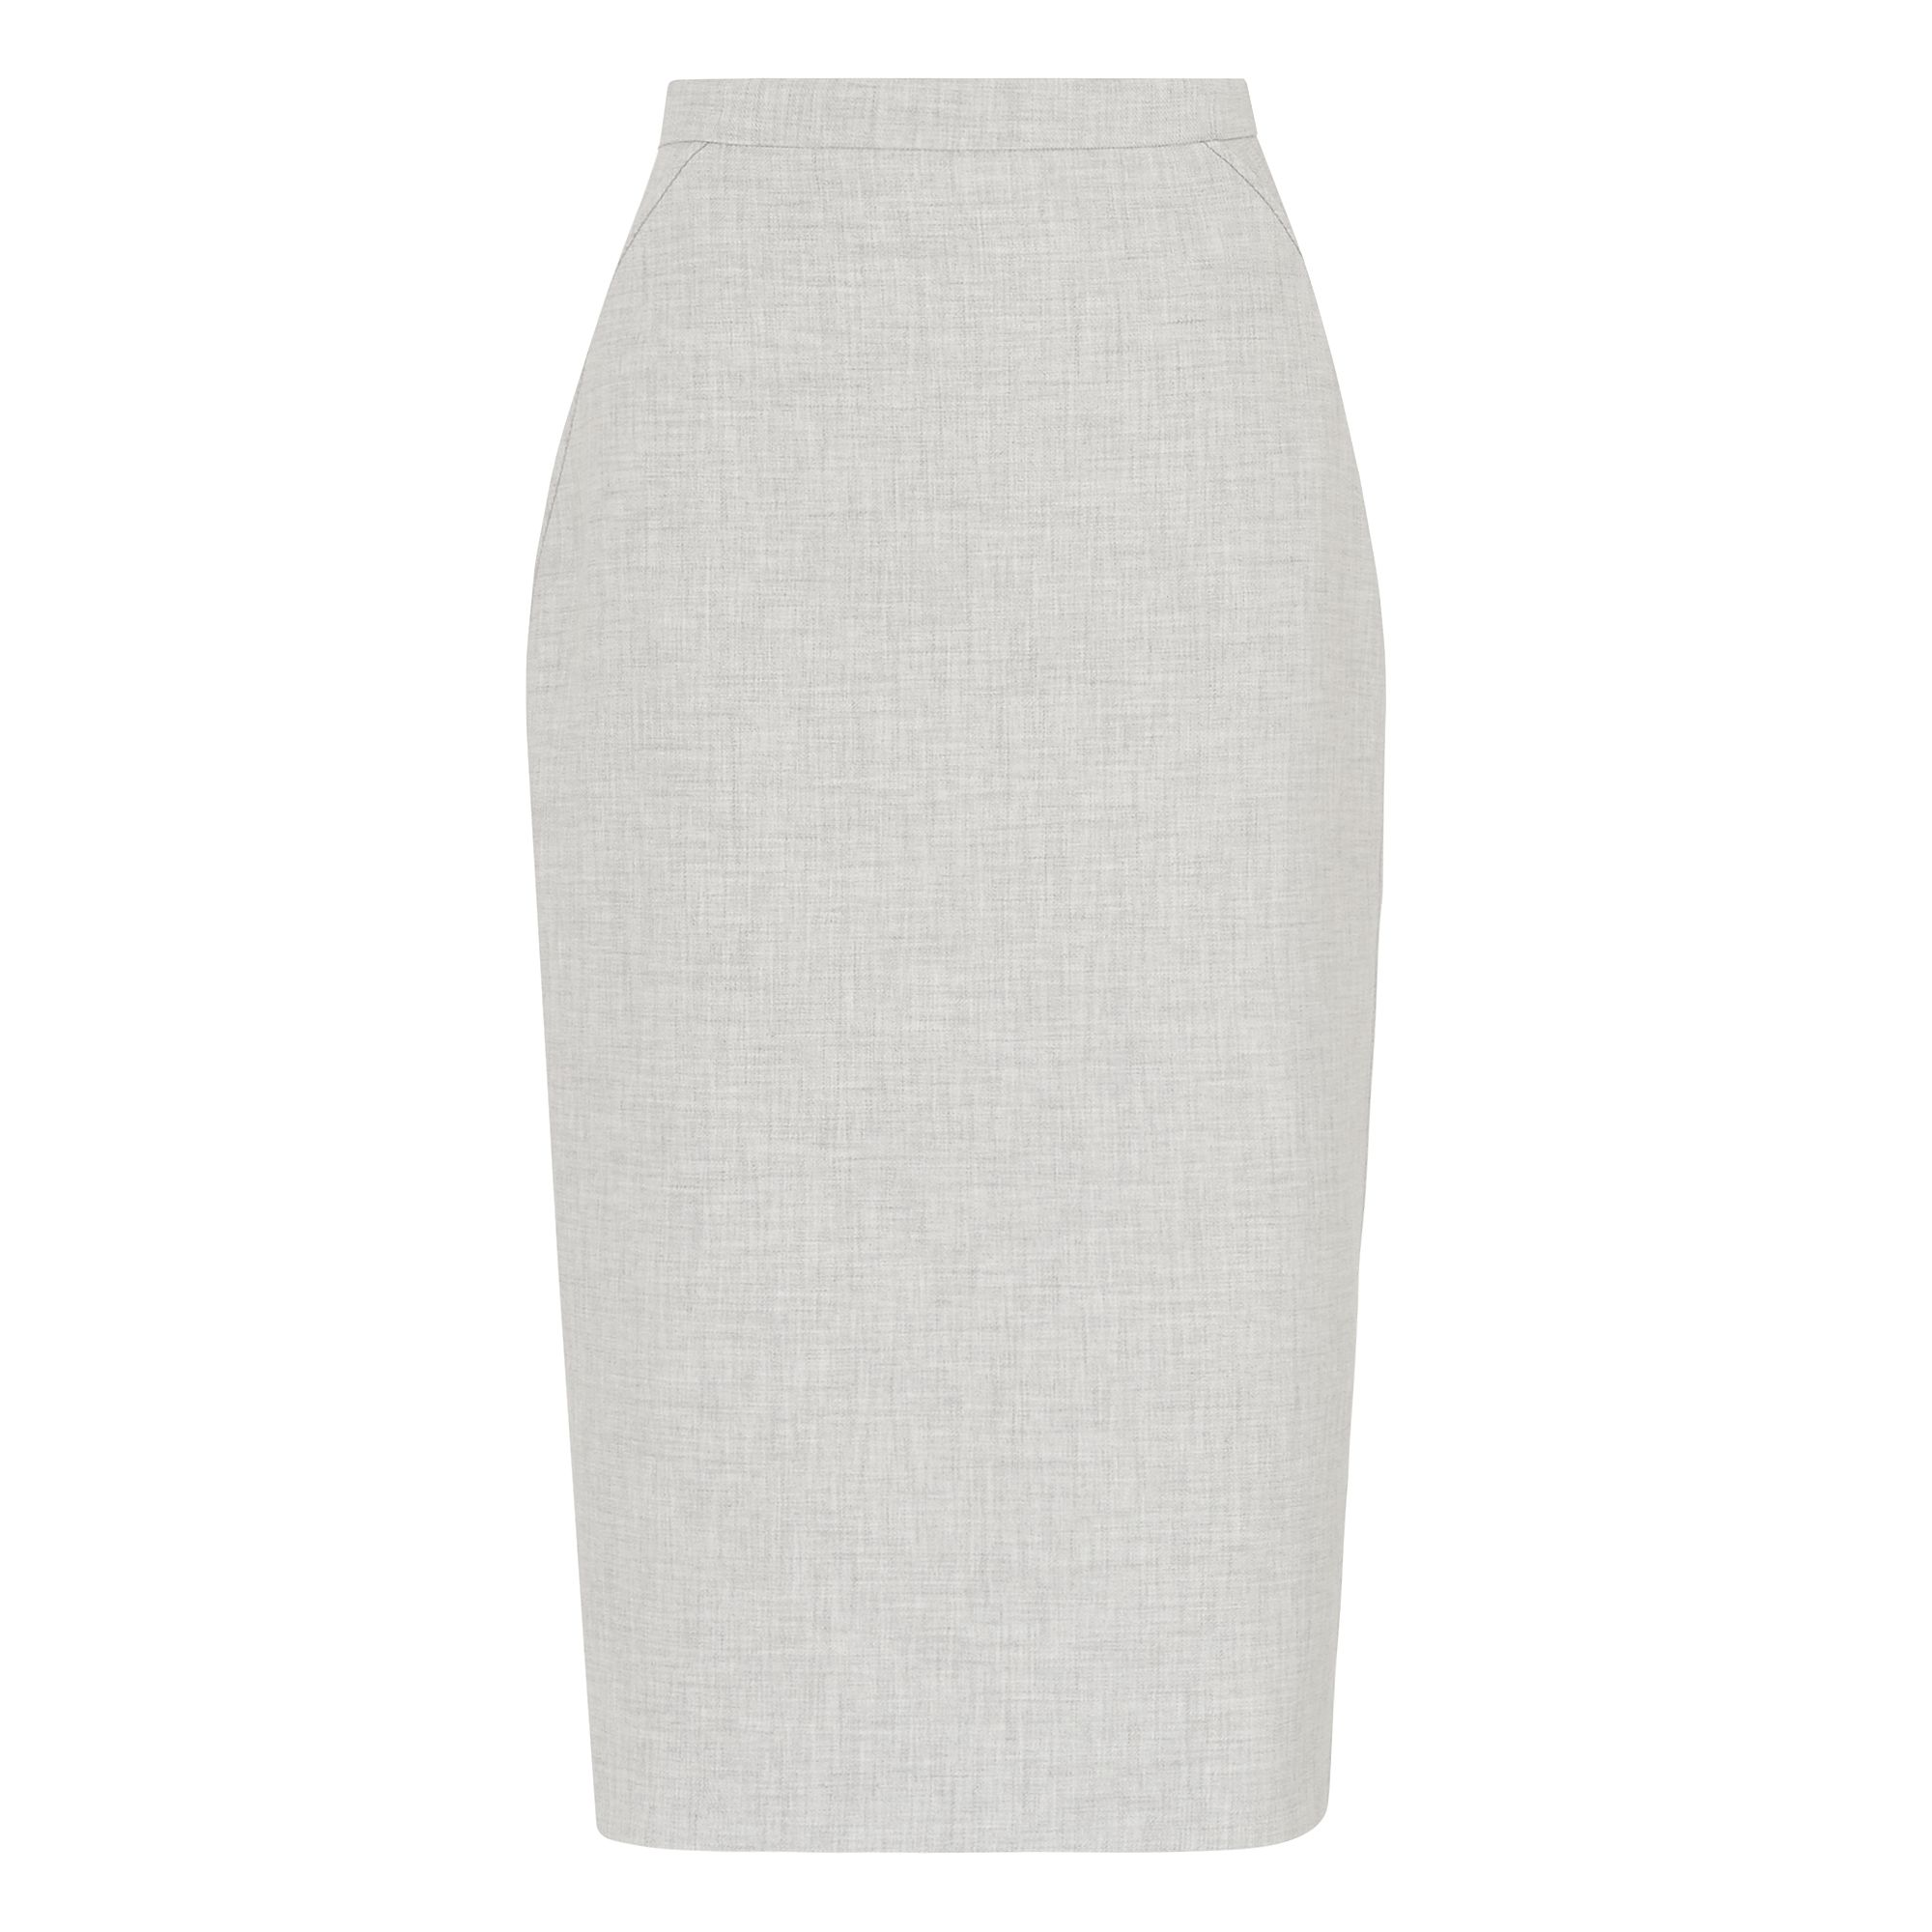 L.K. Bennett Lize Grey Melange Skirt, Grey